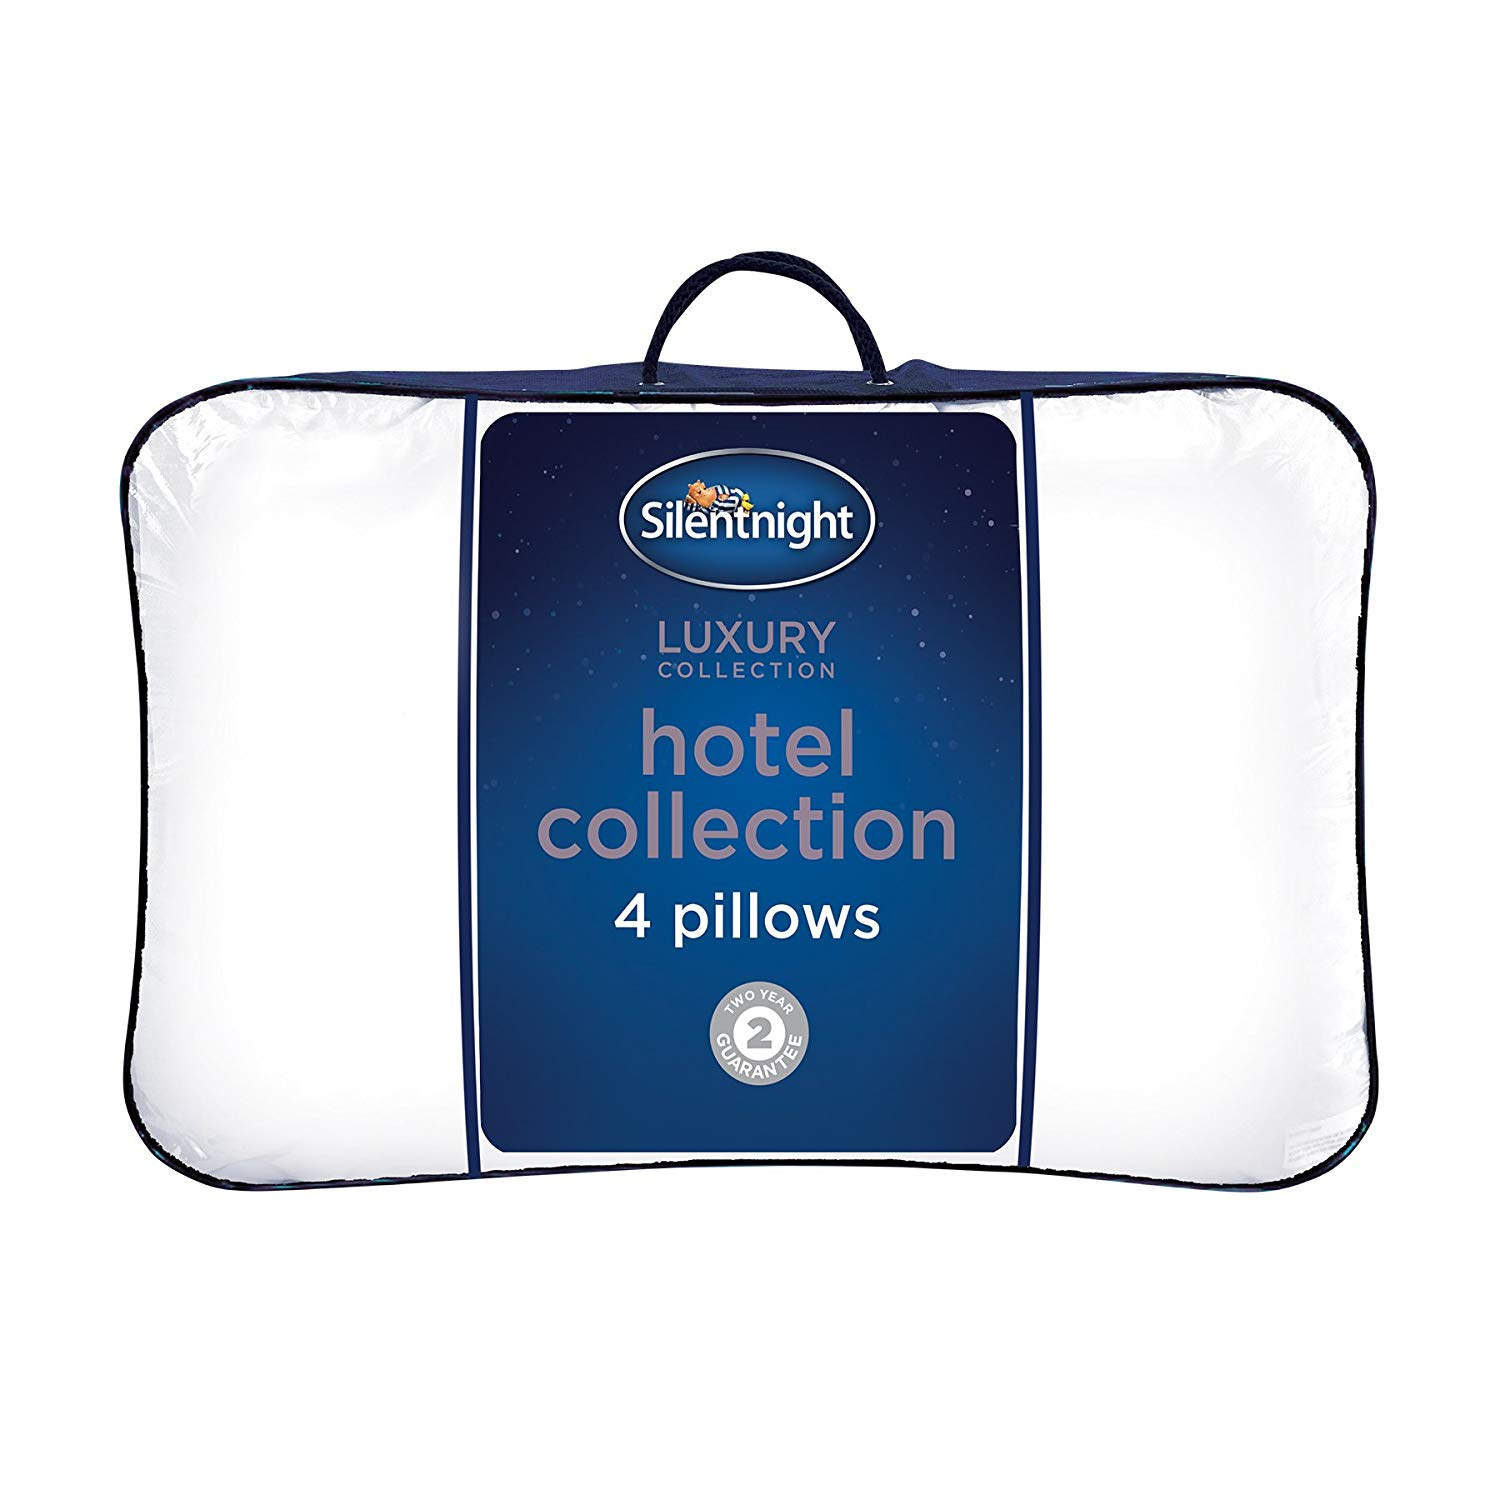 Silentnight Hotel Collection Pillow-Pack of 4, Microfibre